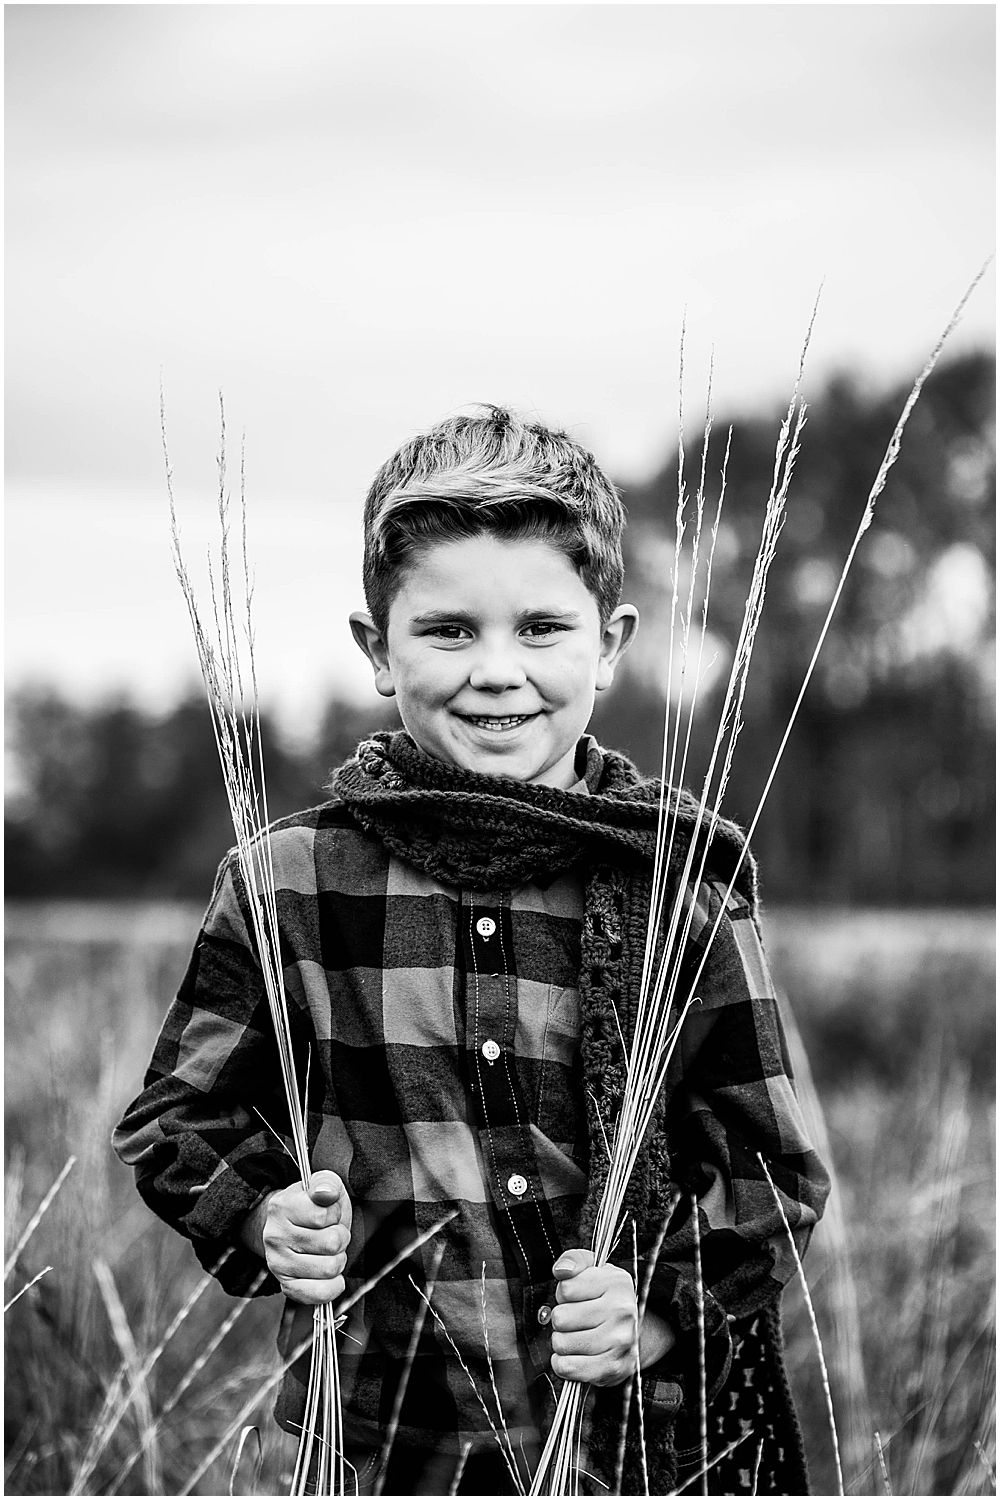 Black and white image of boy smiling in hayfield at Hovander.